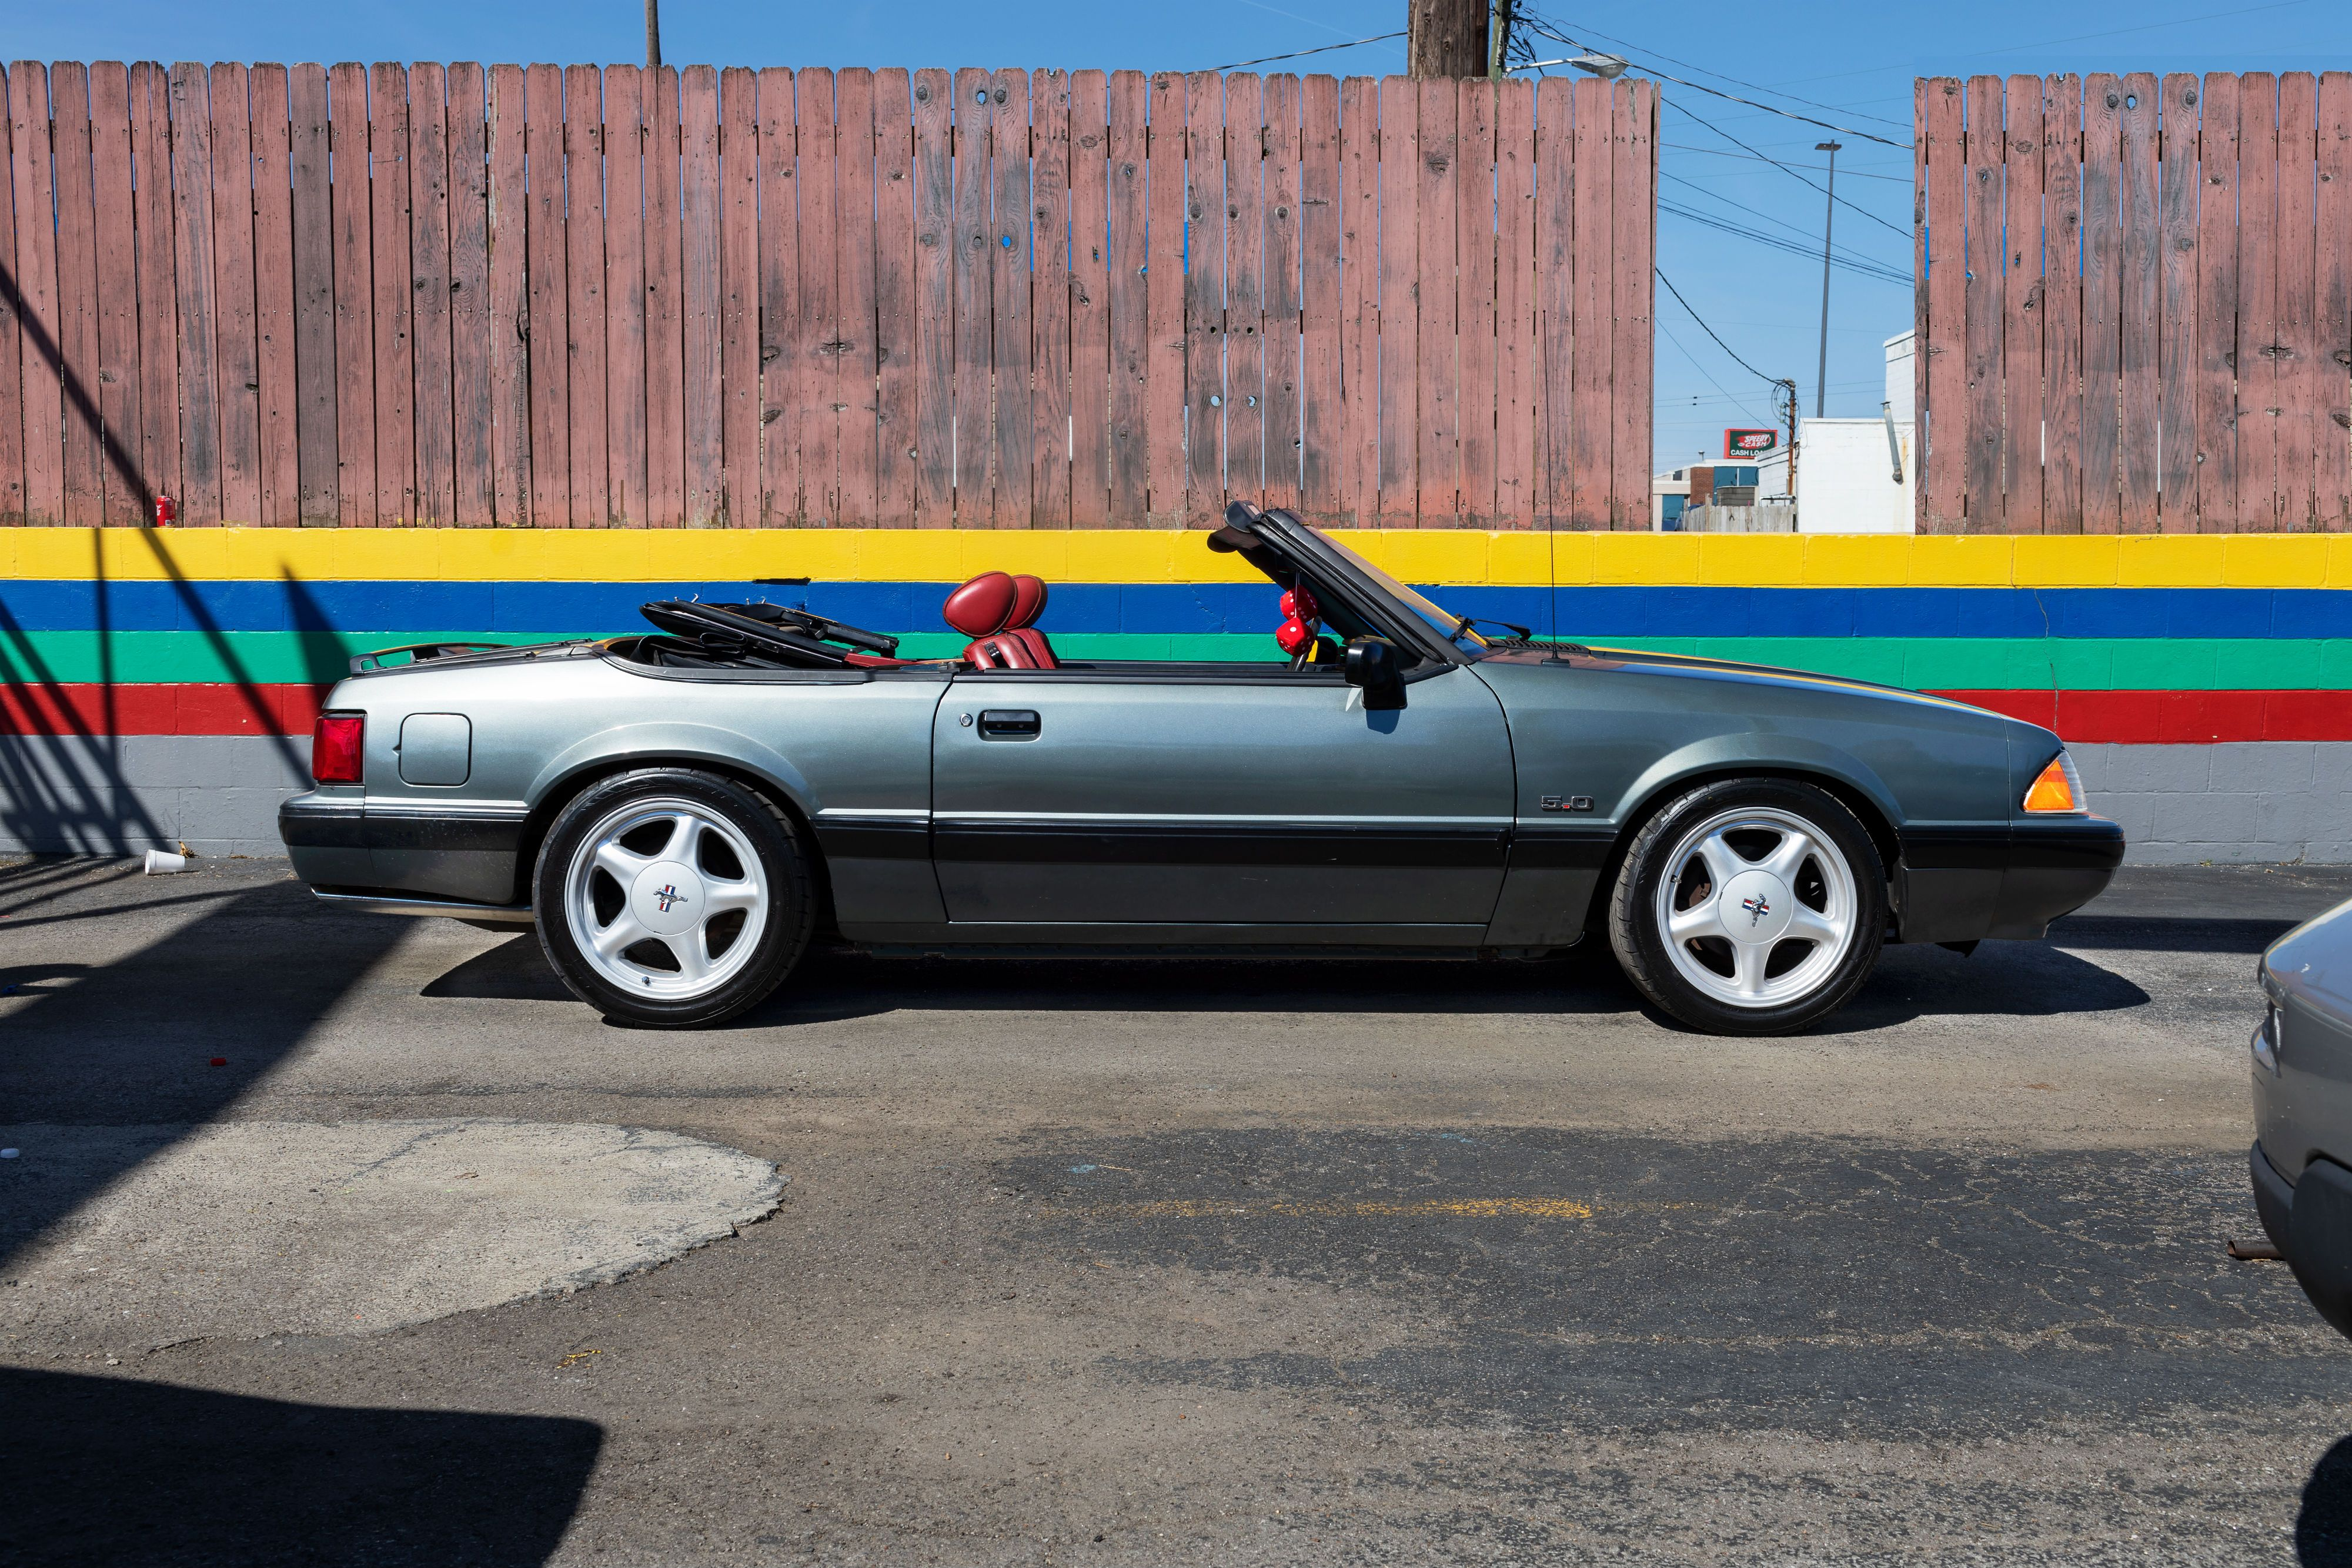 The classic of 80s muscle 1988 mustang lx convertible